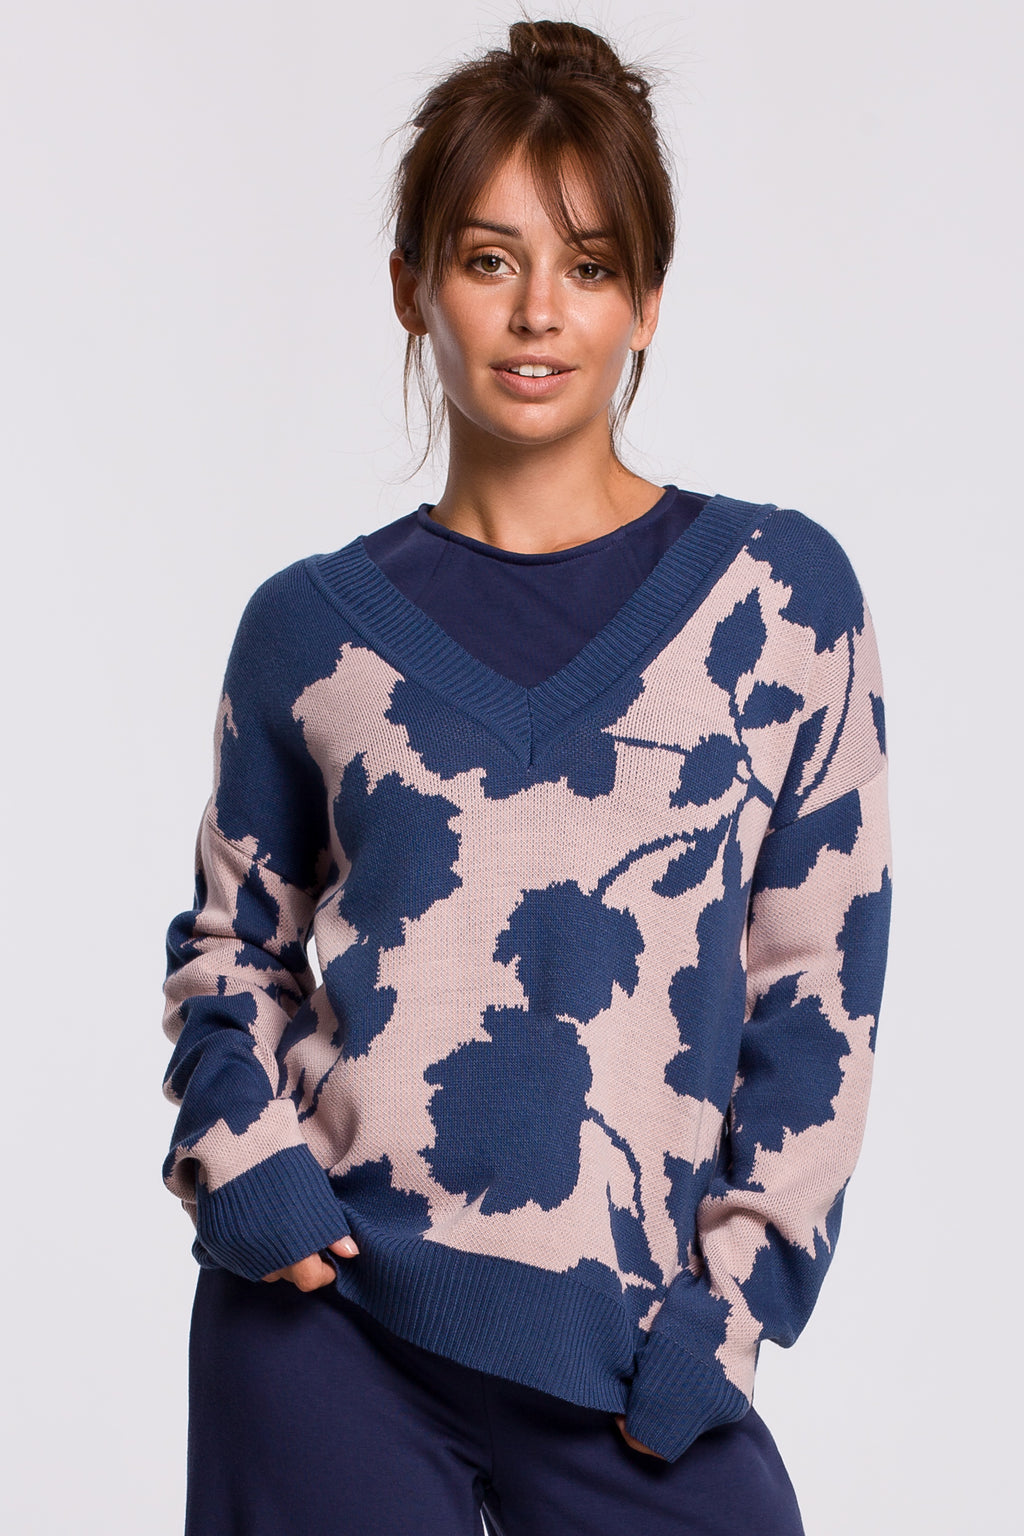 Lilac Sweater With Blue Floral Print - So Chic Boutique